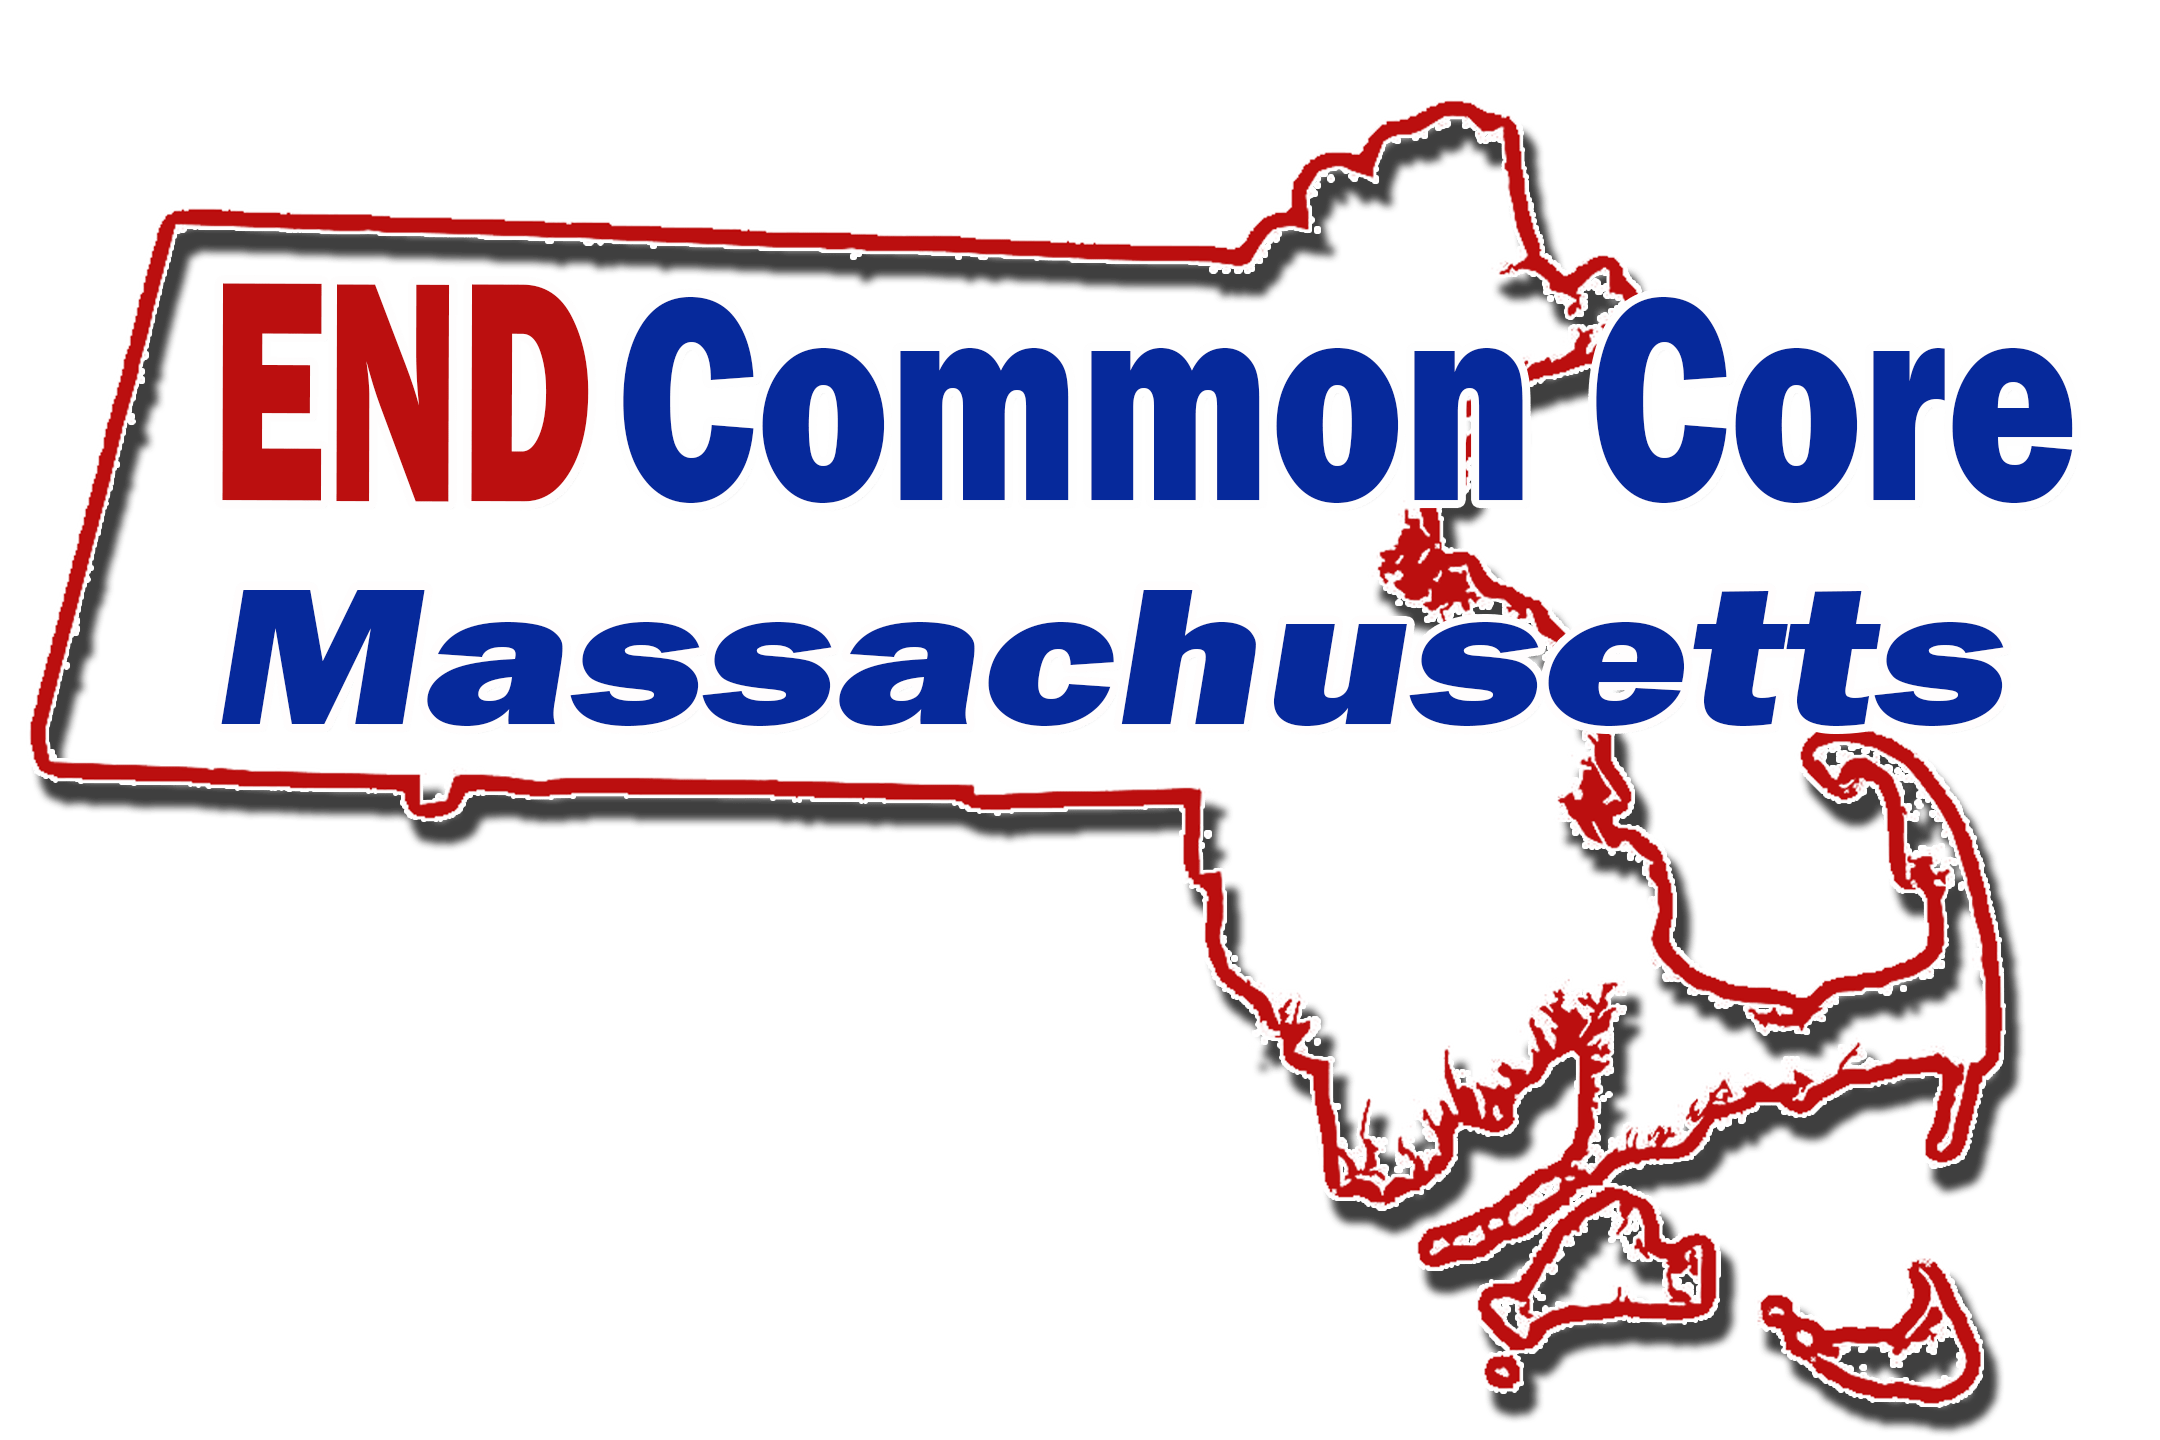 END Common Core Massachusetts